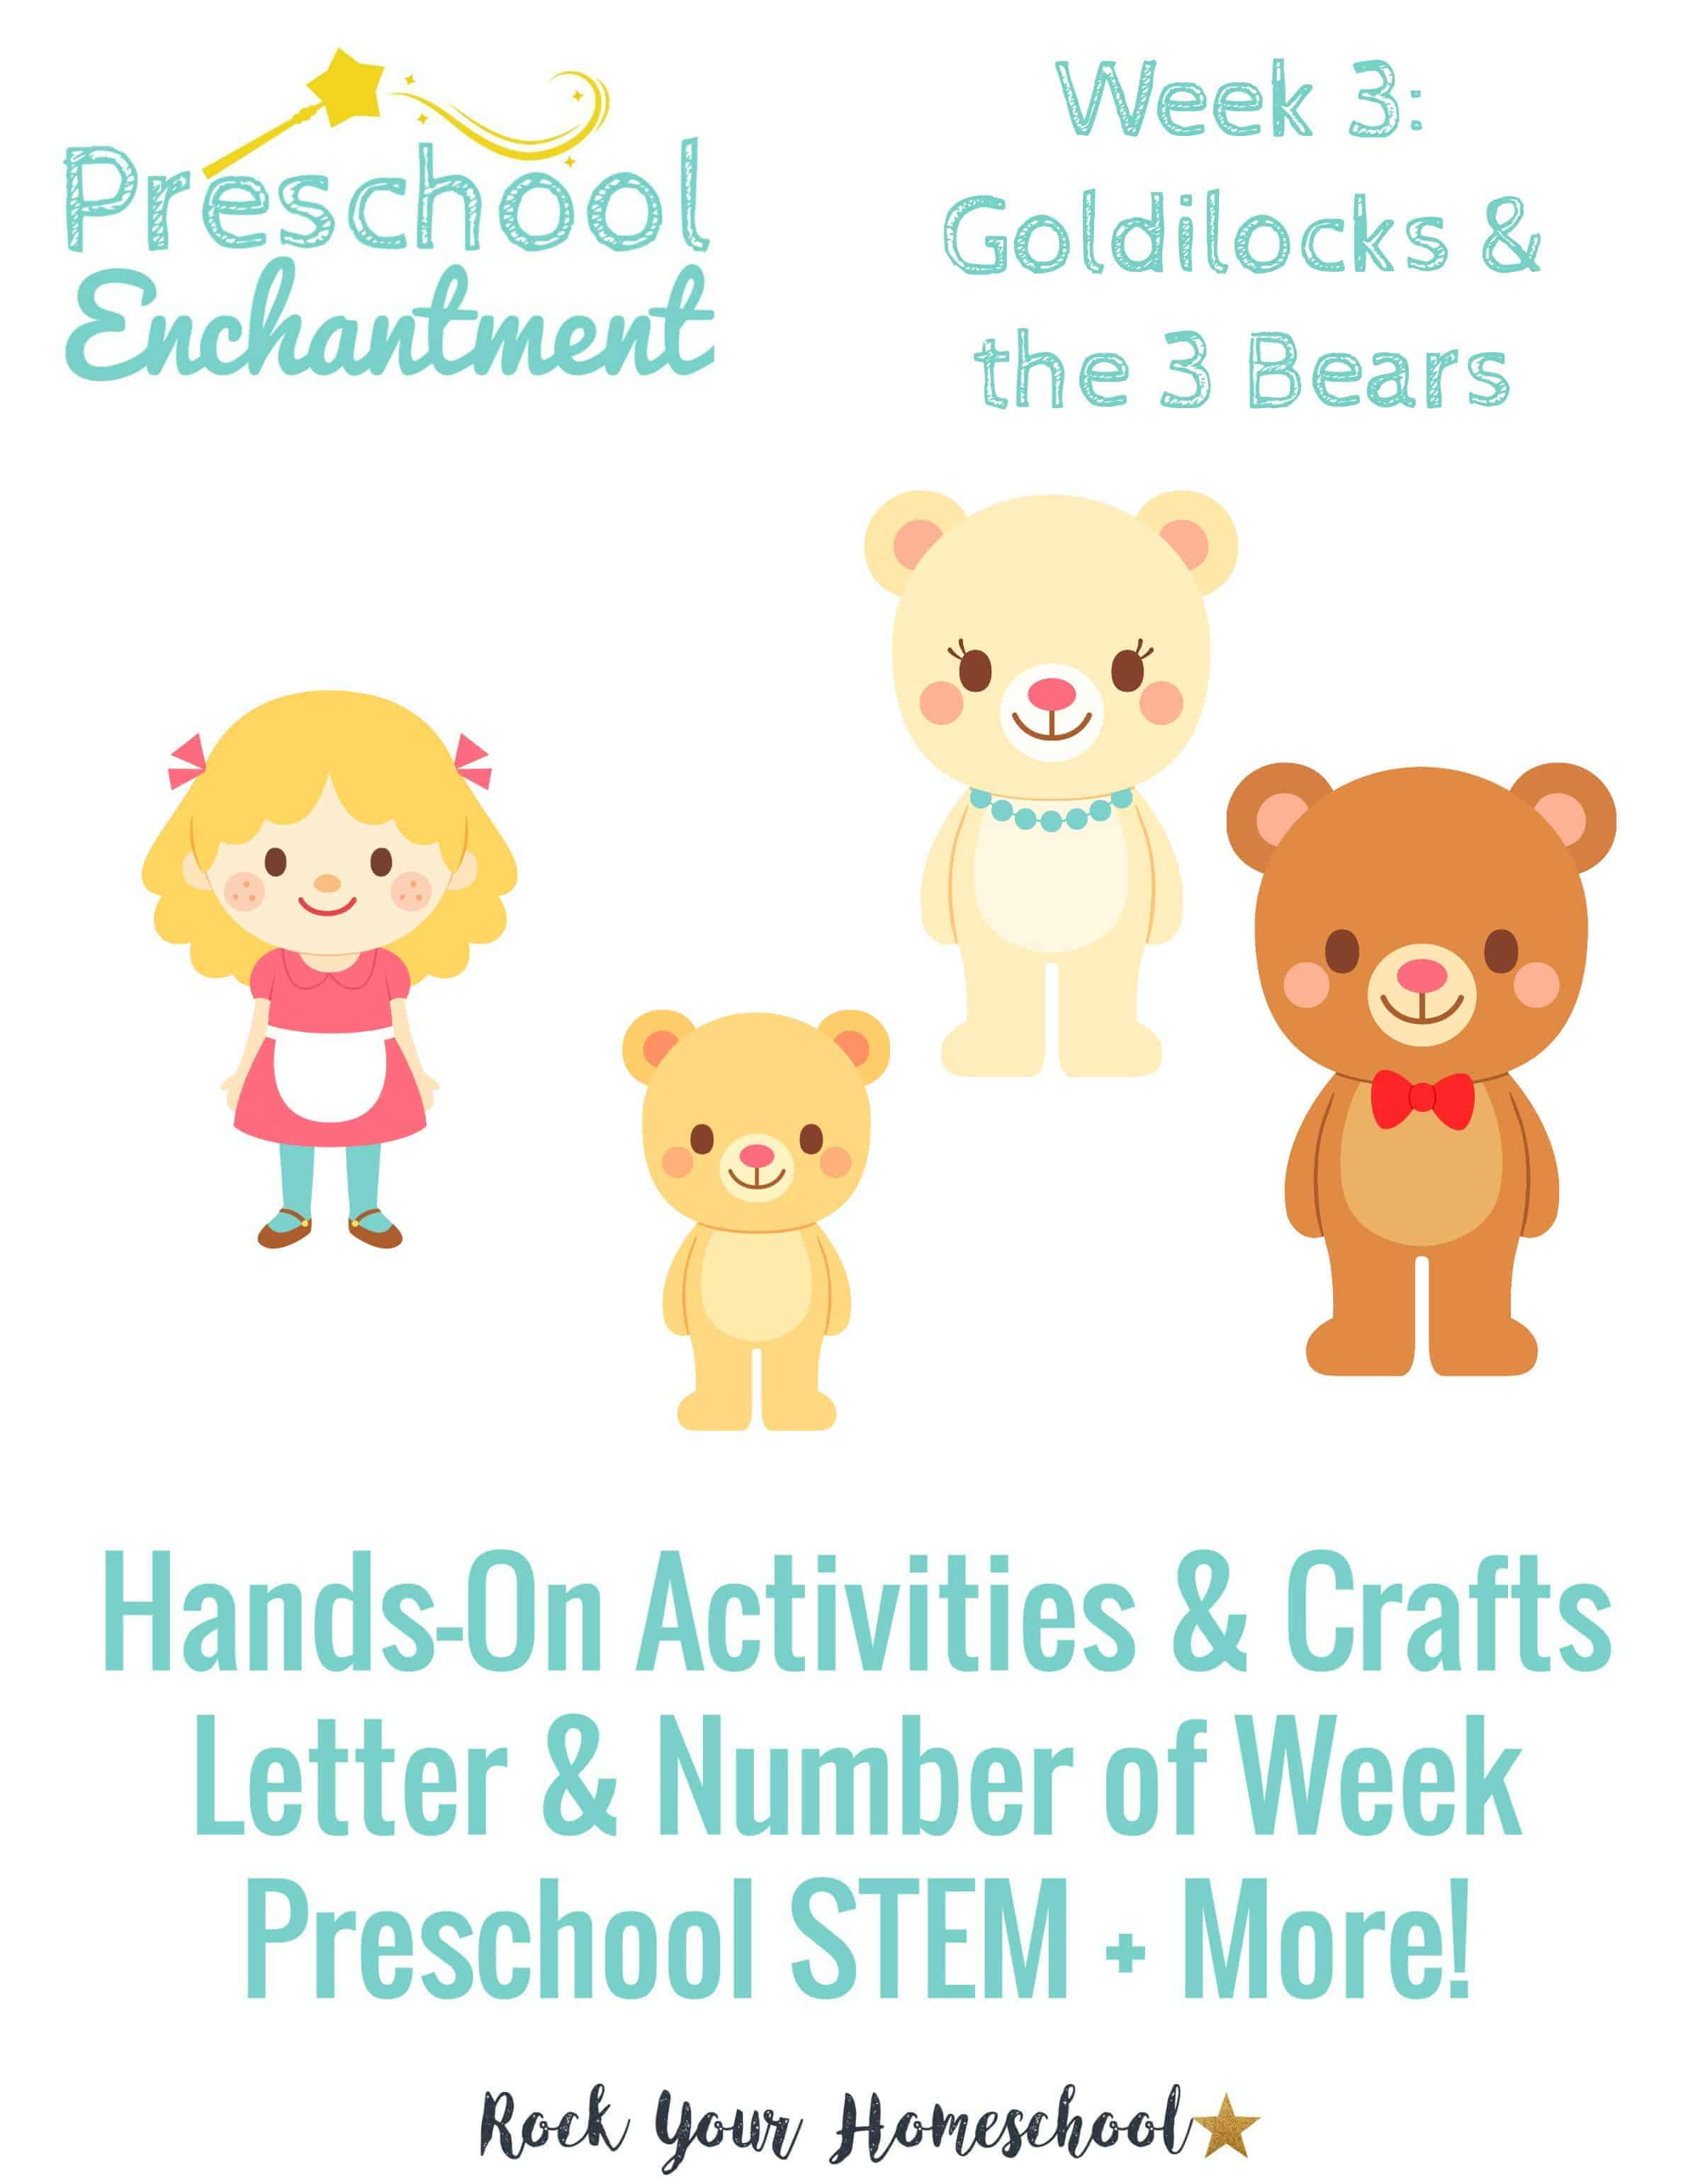 Unit study colors preschool - Goldilocks The Three Bears Is The Preschool Enchantment Unit Study For Week